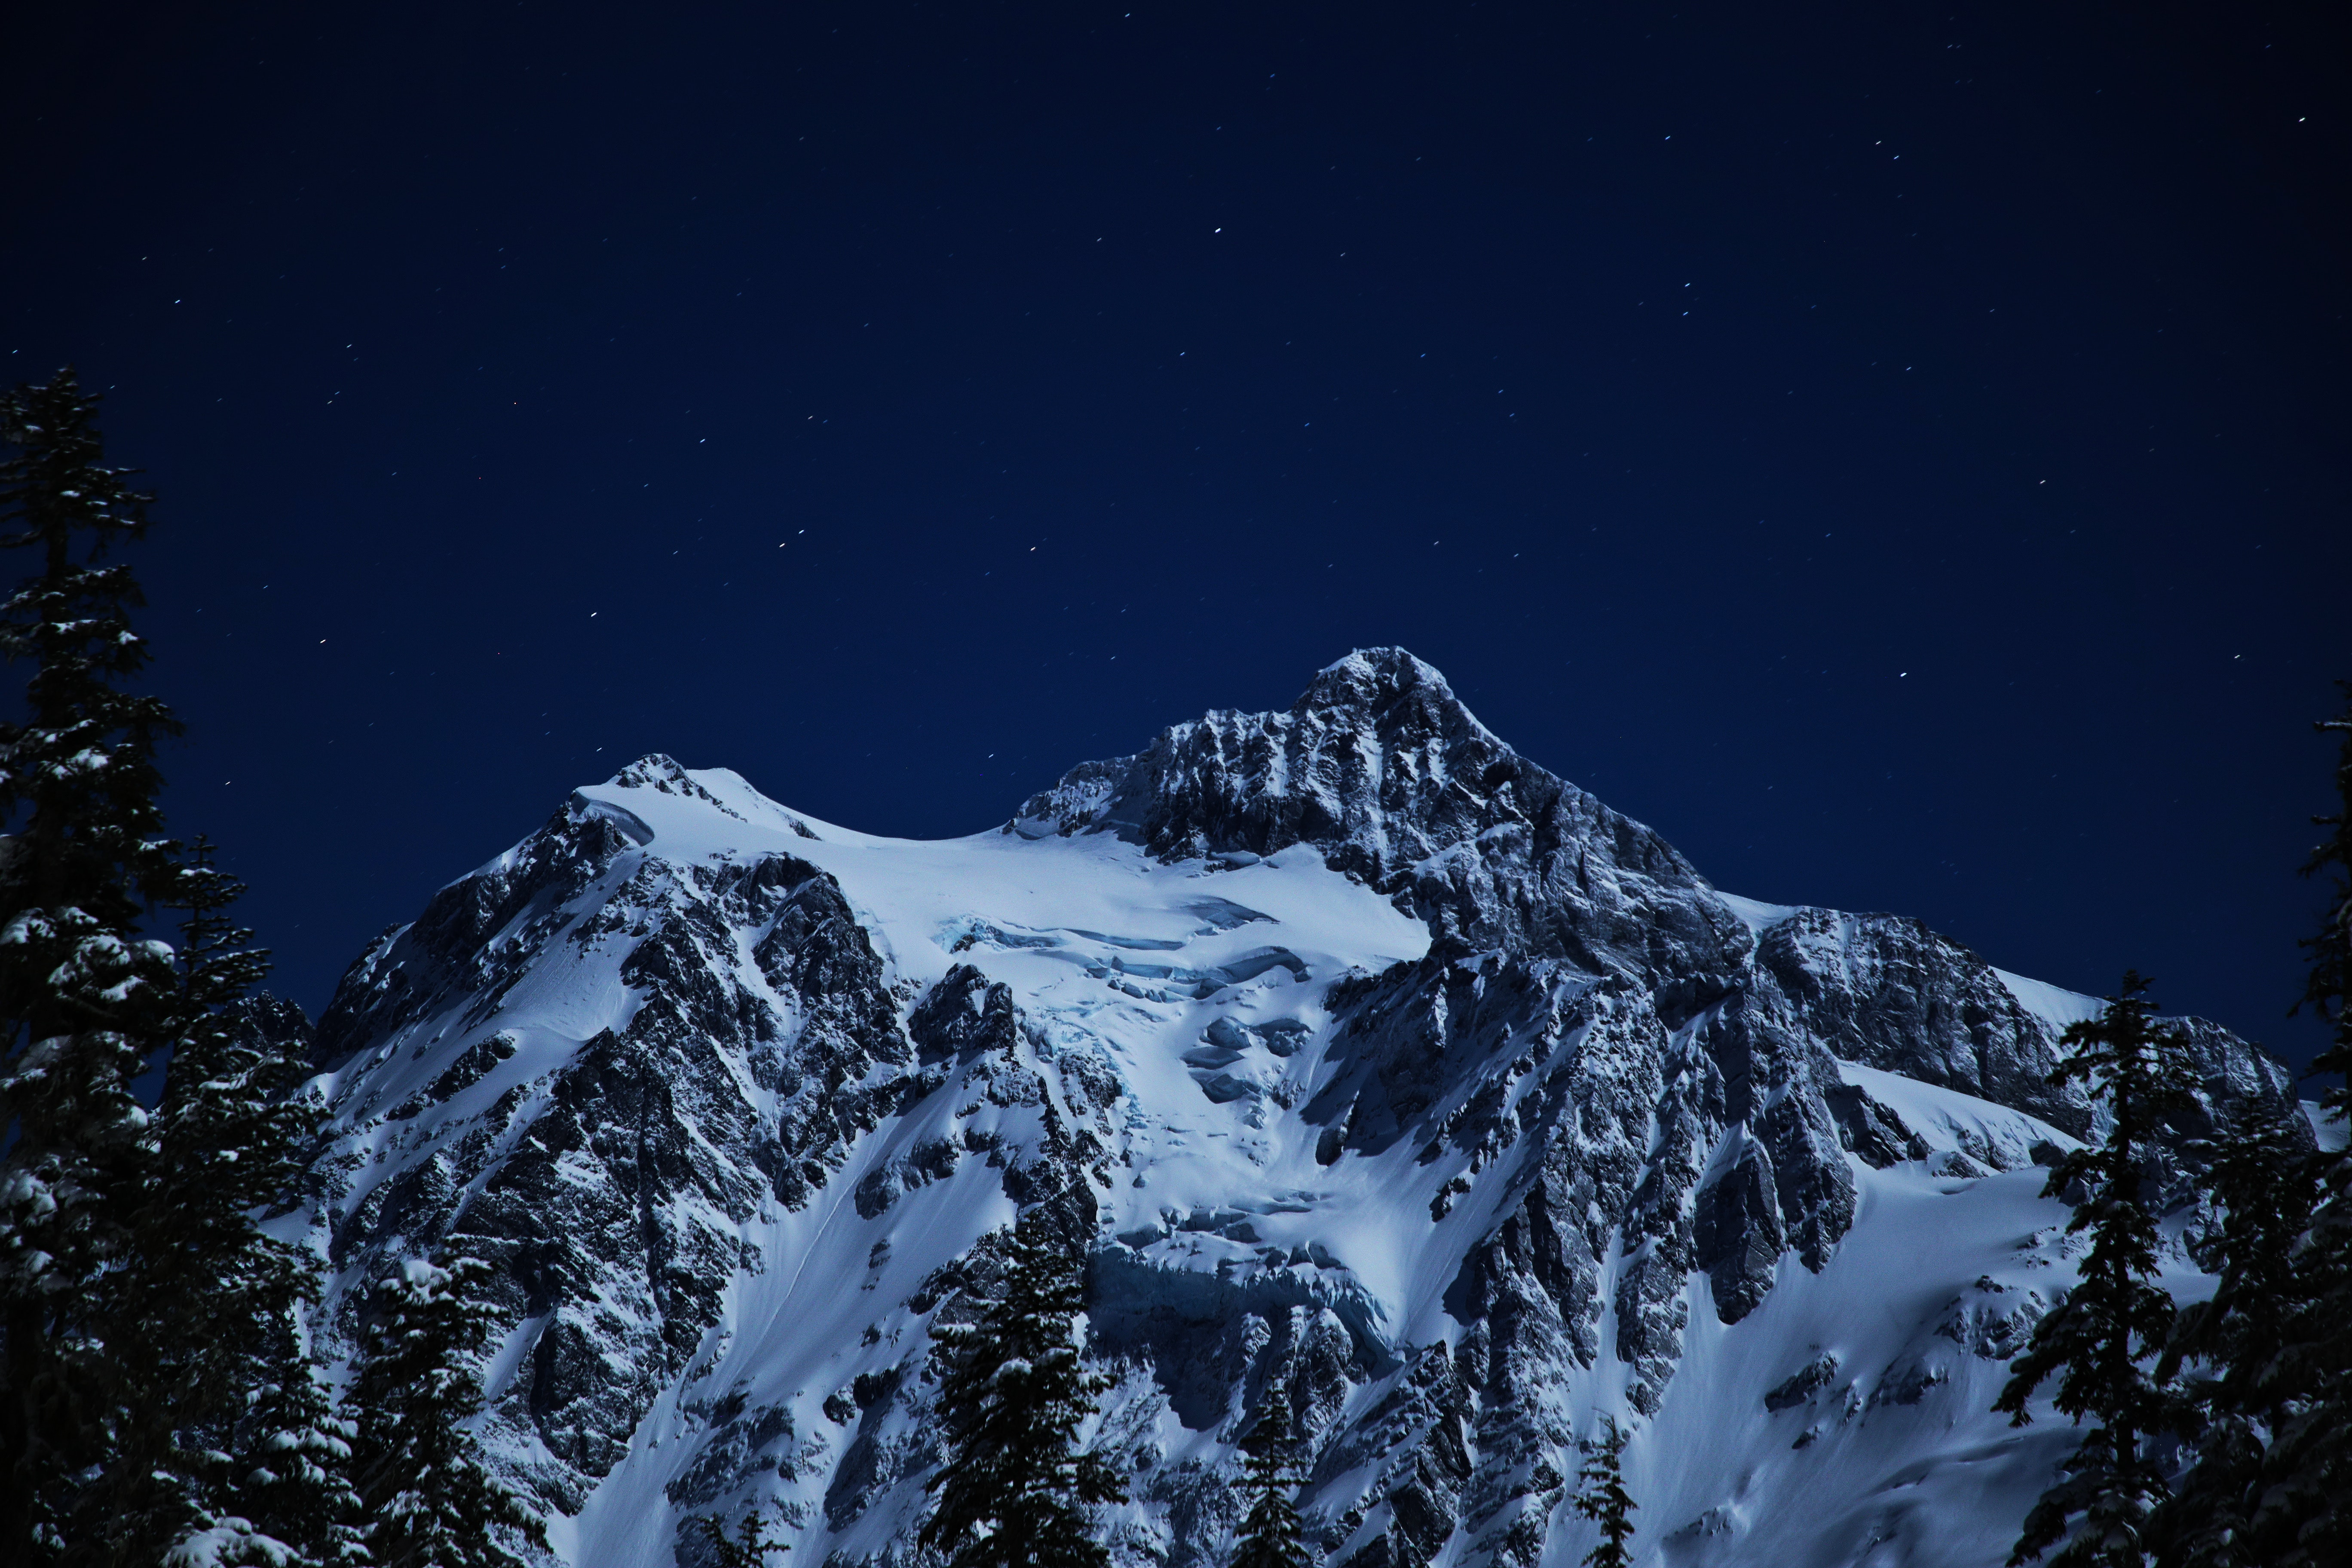 snow capped mountains during night time 1574939578 - Snow Capped Mountains During Night Time -